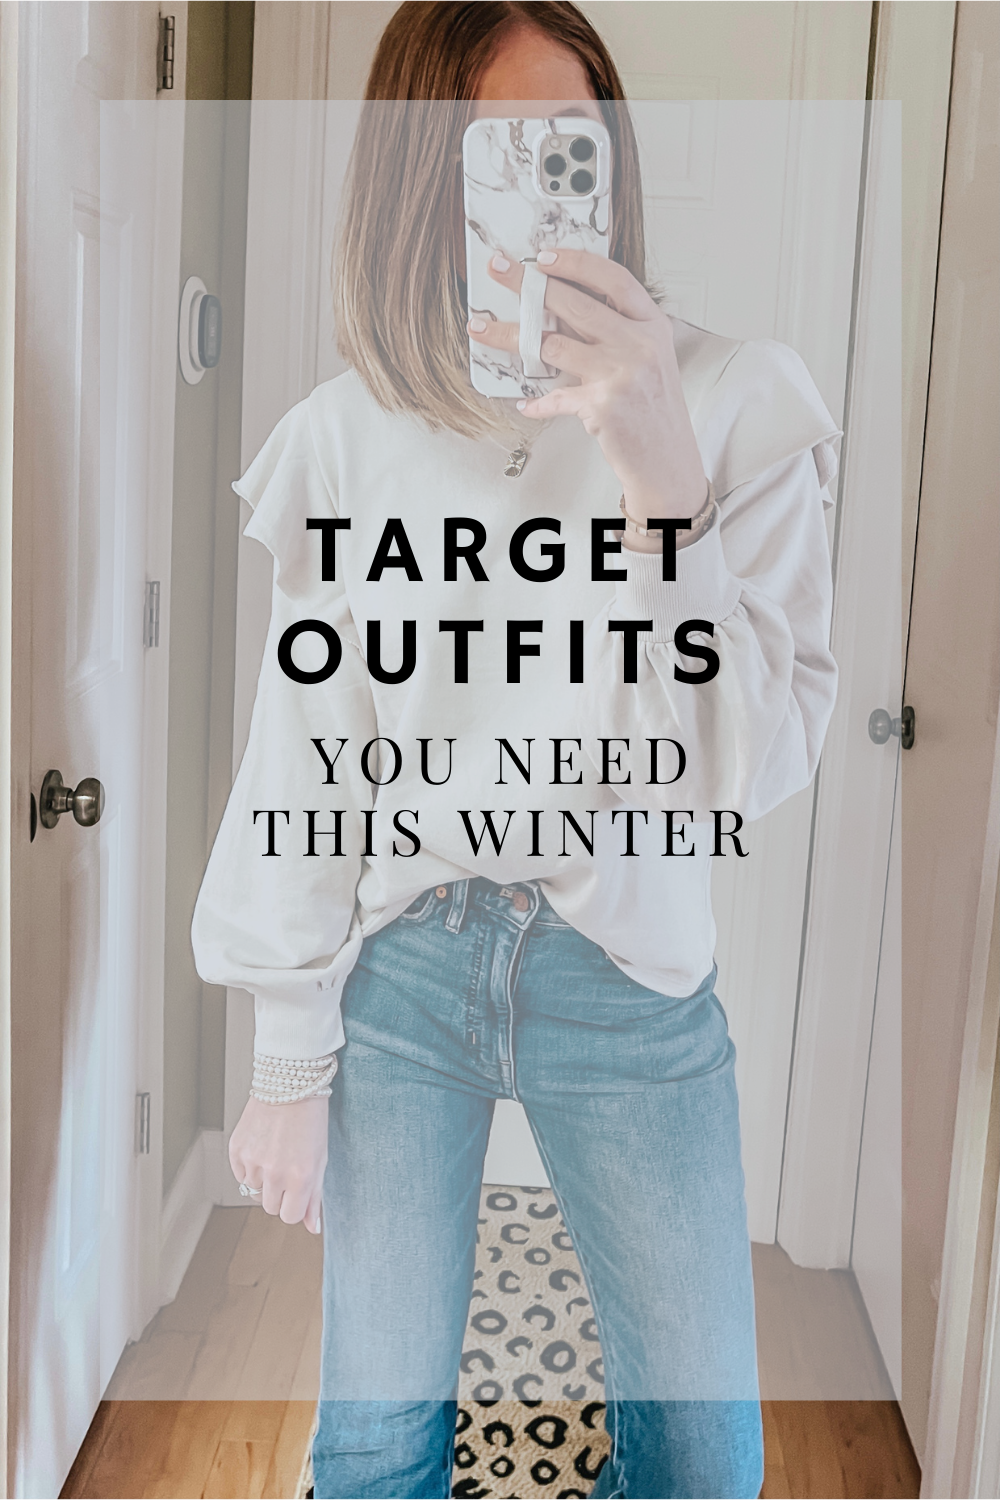 Target Outfits You Need This Winter